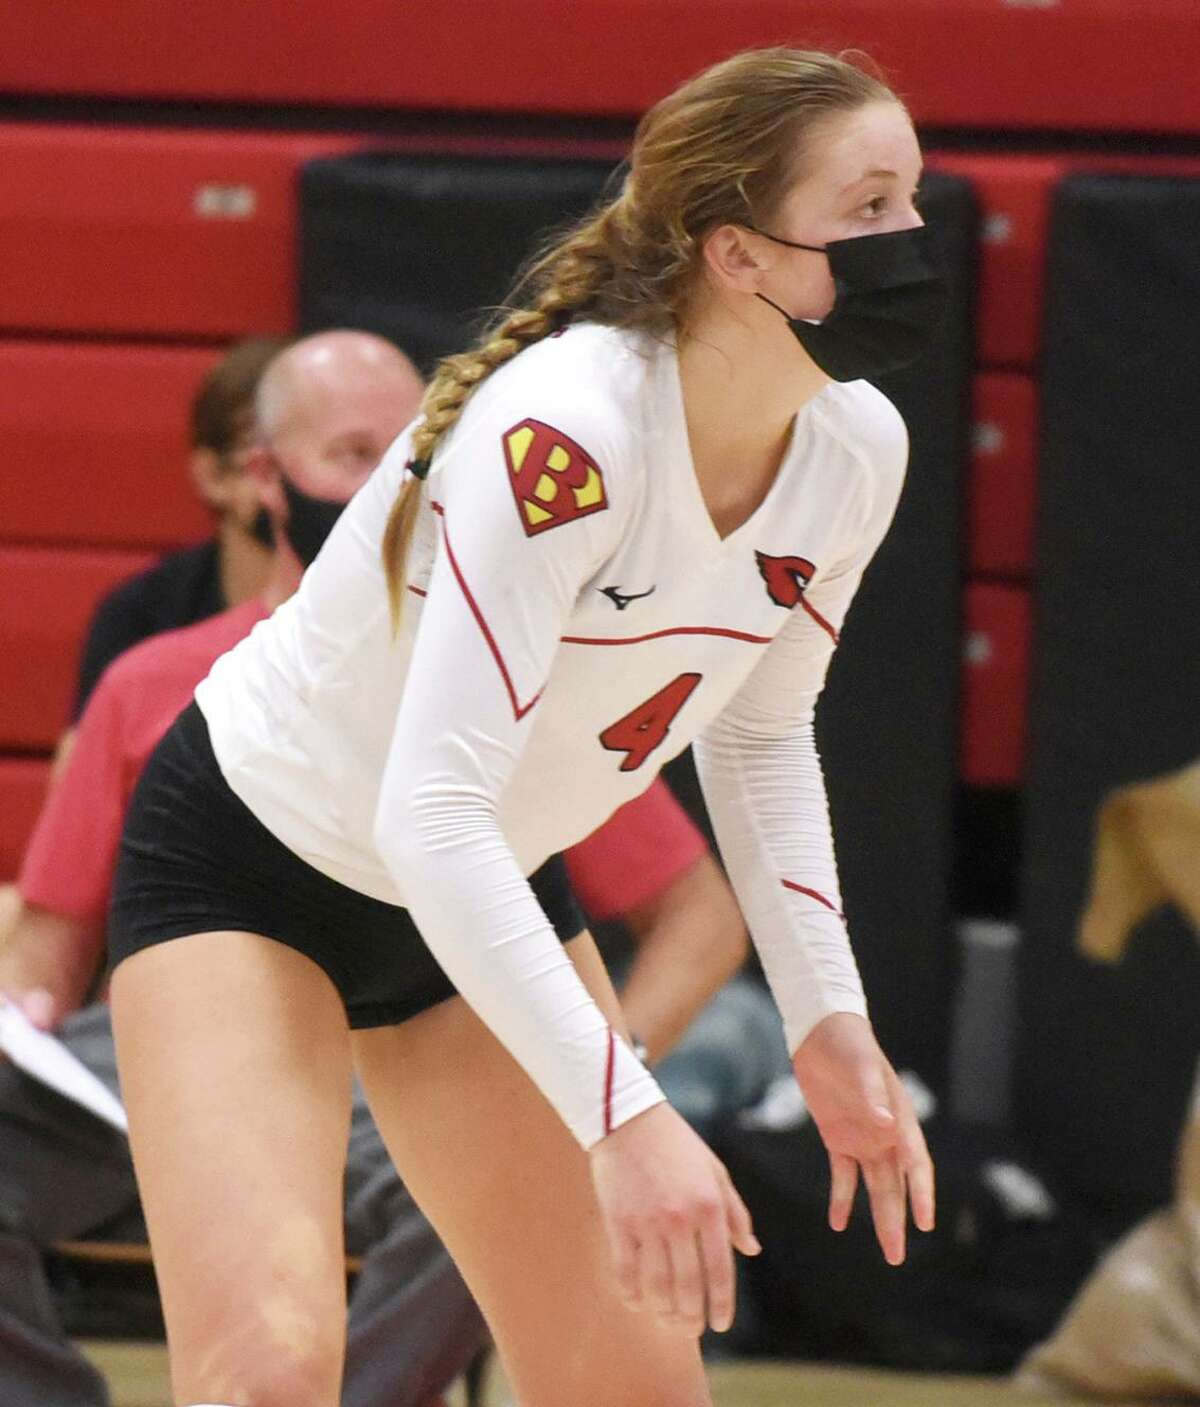 Greenwich's Cornelia Roach (4) awaits a serve during a girls volleyball contest at New Canaan High School on Thursday, Oct. 22, 2020.